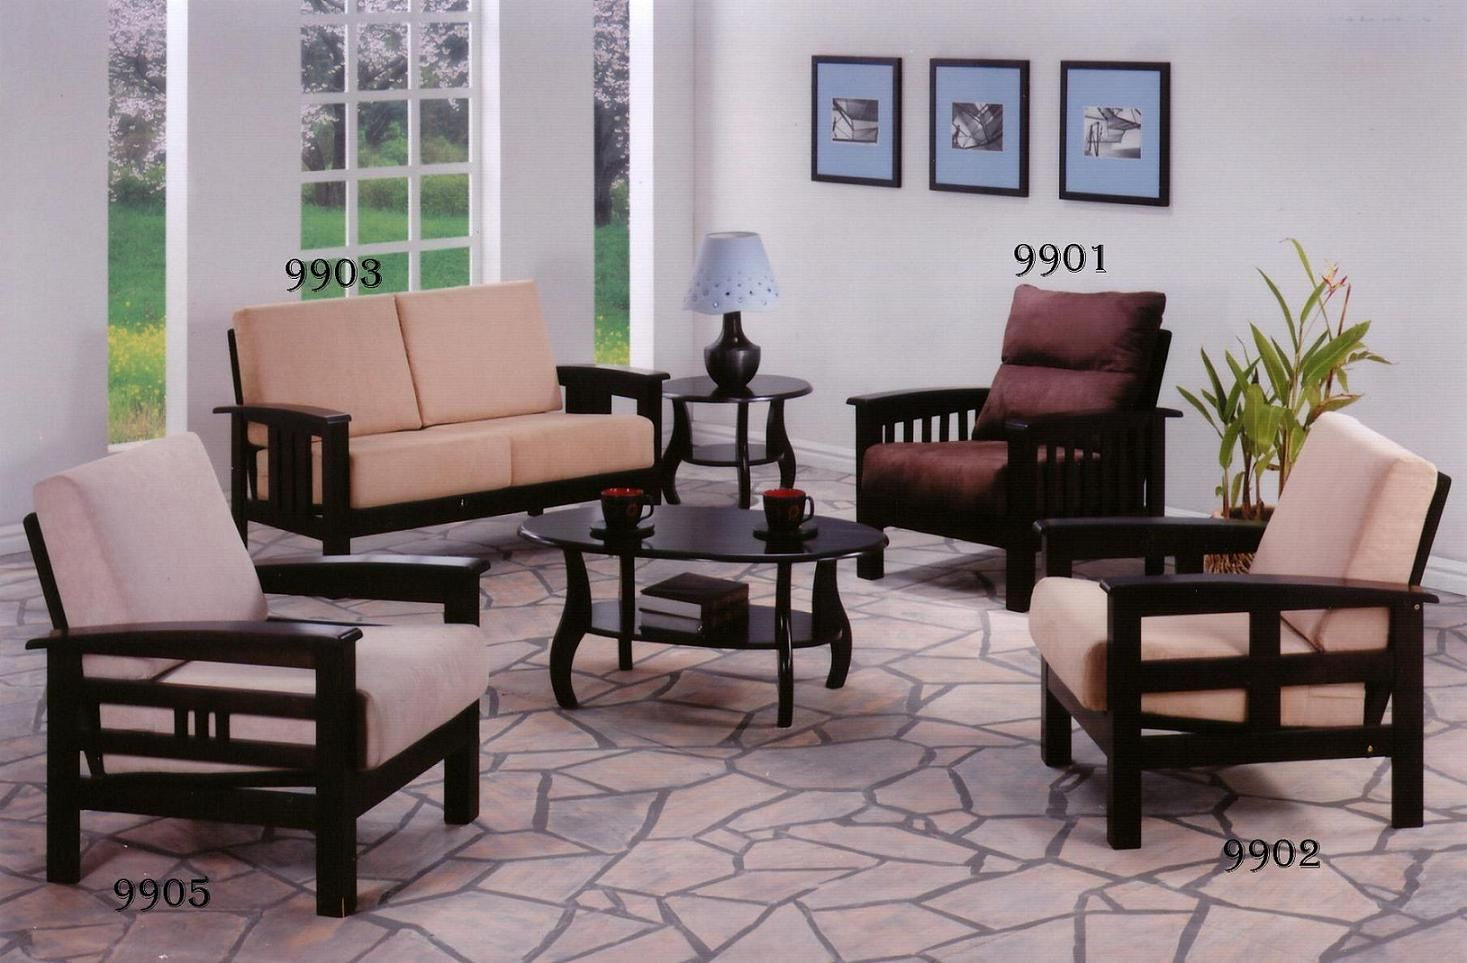 sofa set designs for living room india home decorating ideas rooms wooden pictures in traditional indian style this all